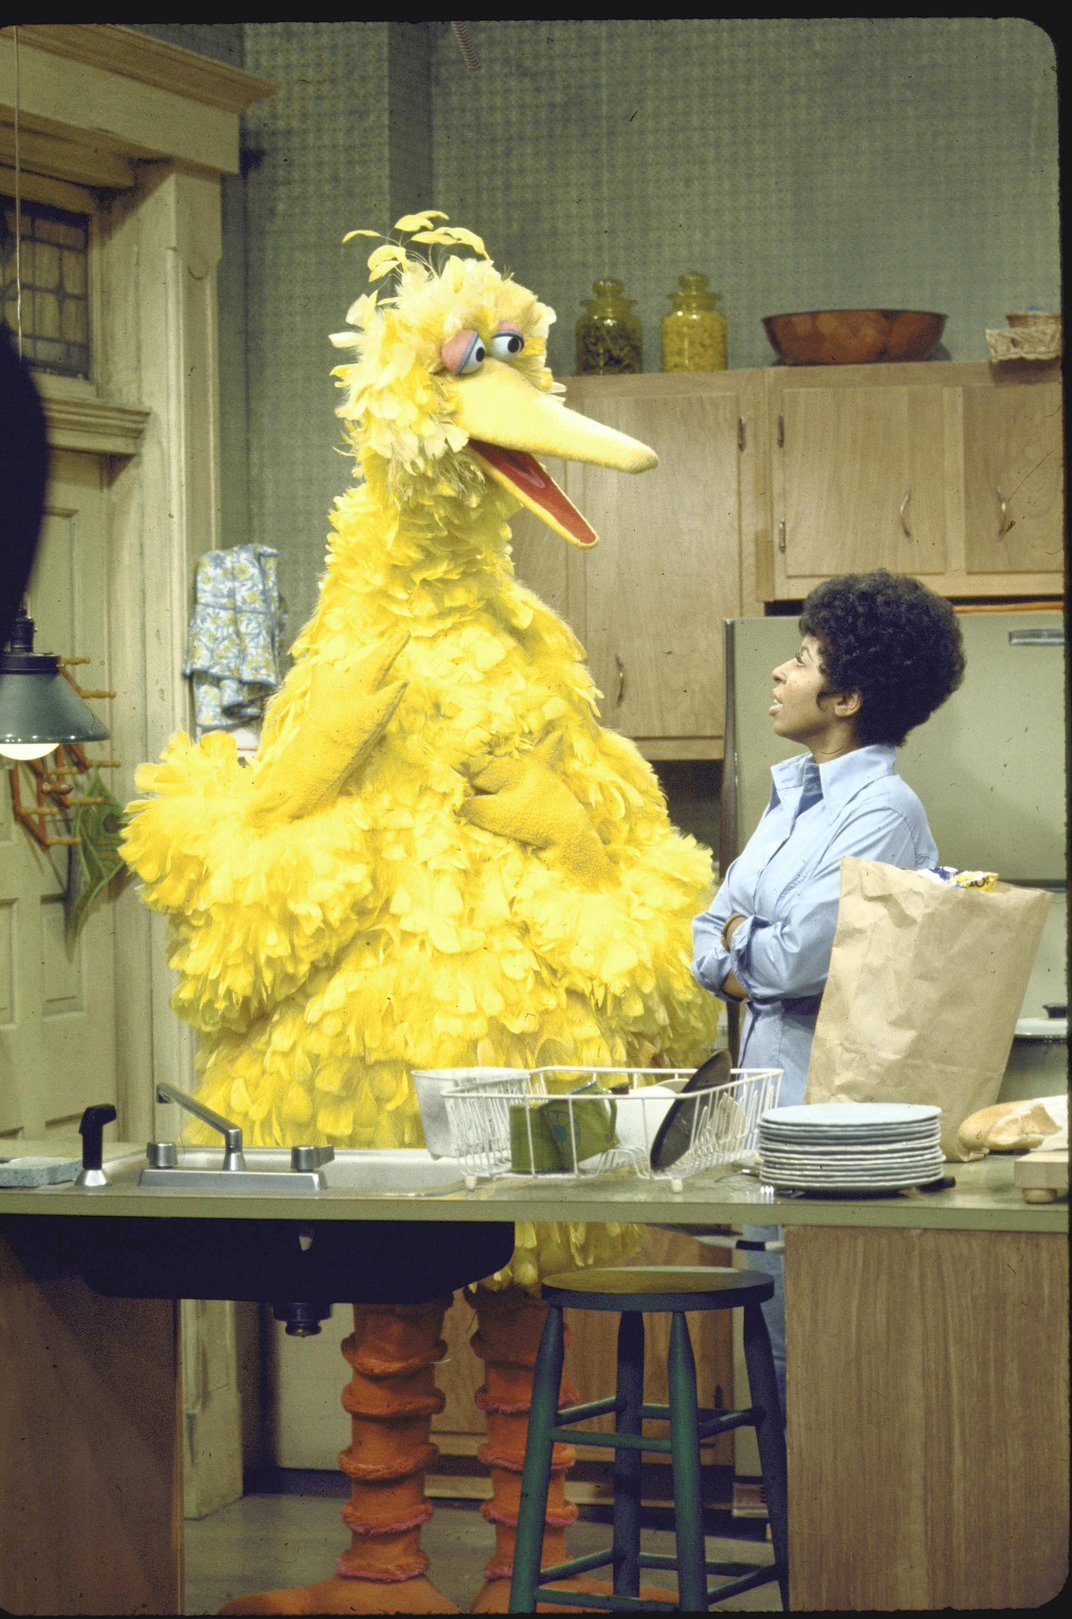 The Unmistakable Black Roots of 'Sesame Street'